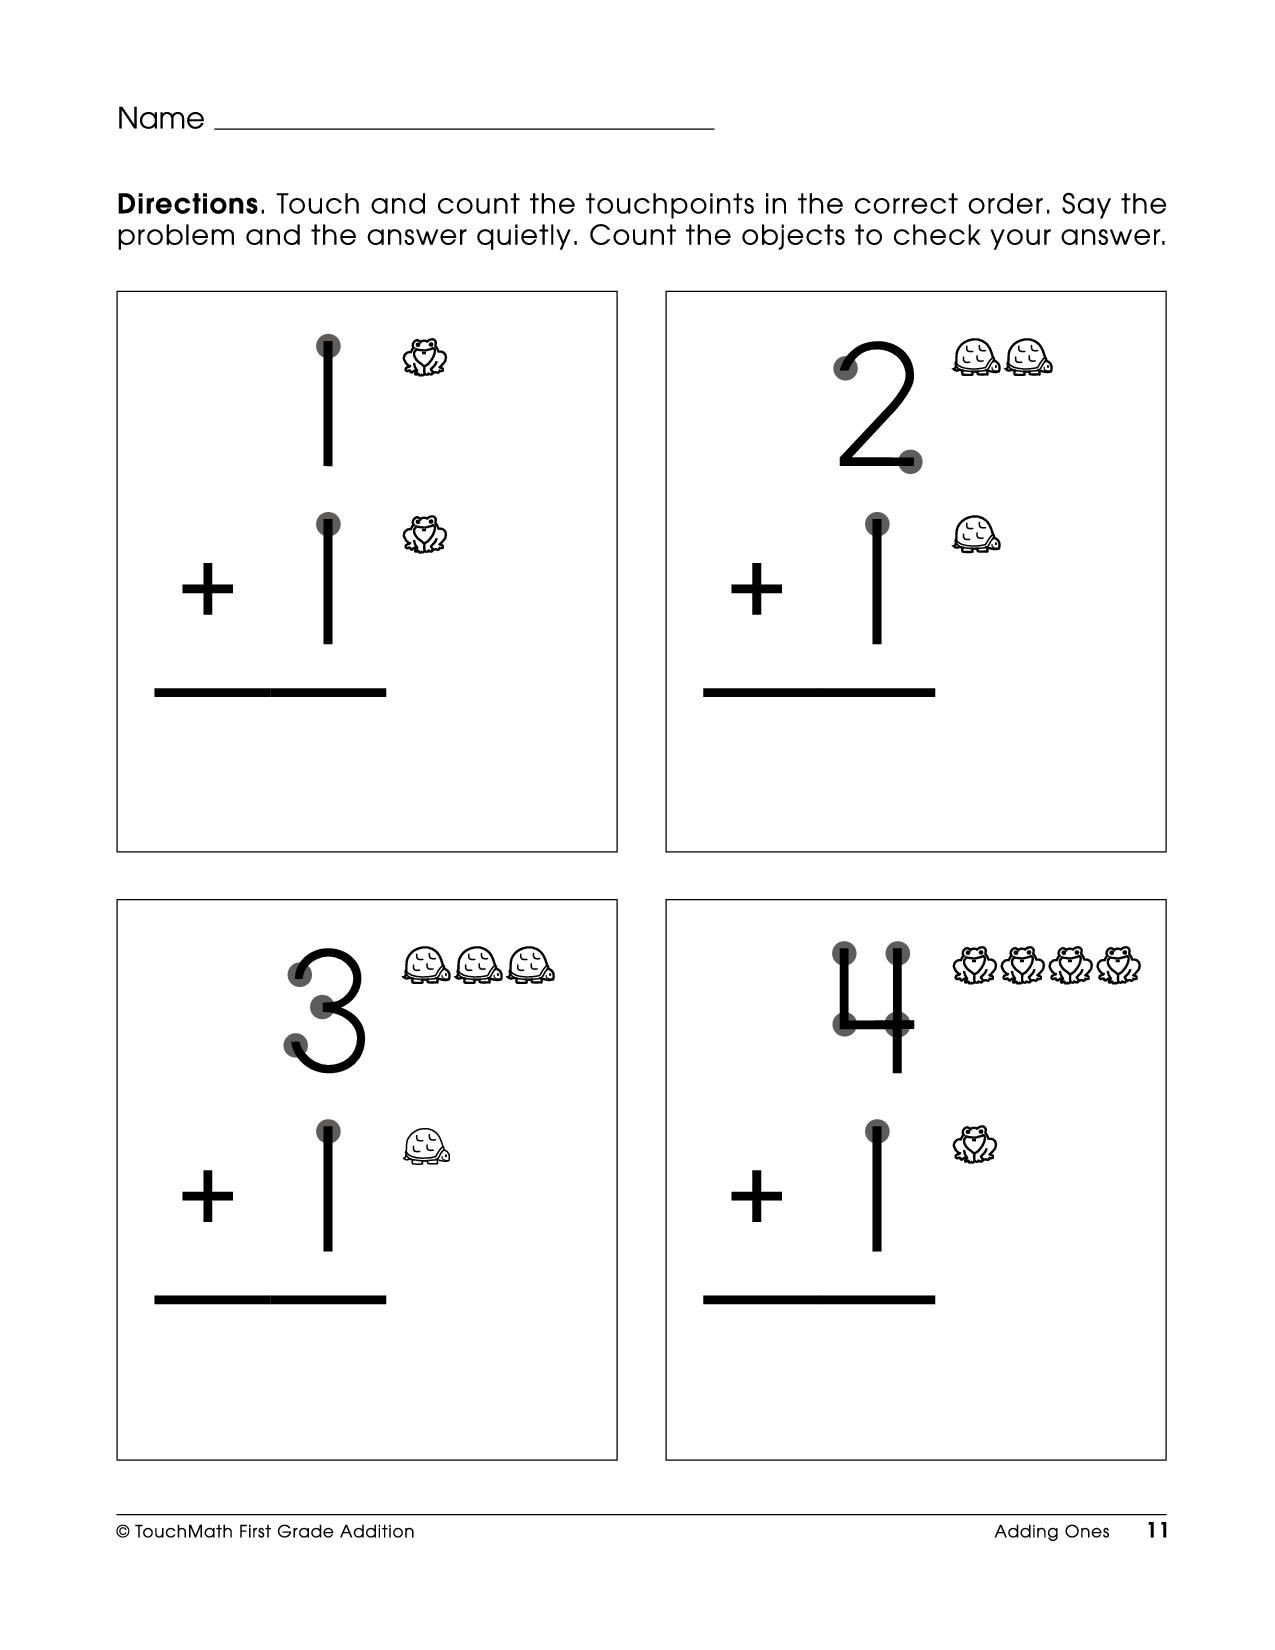 Free Printable Touchpoint Math Worksheets